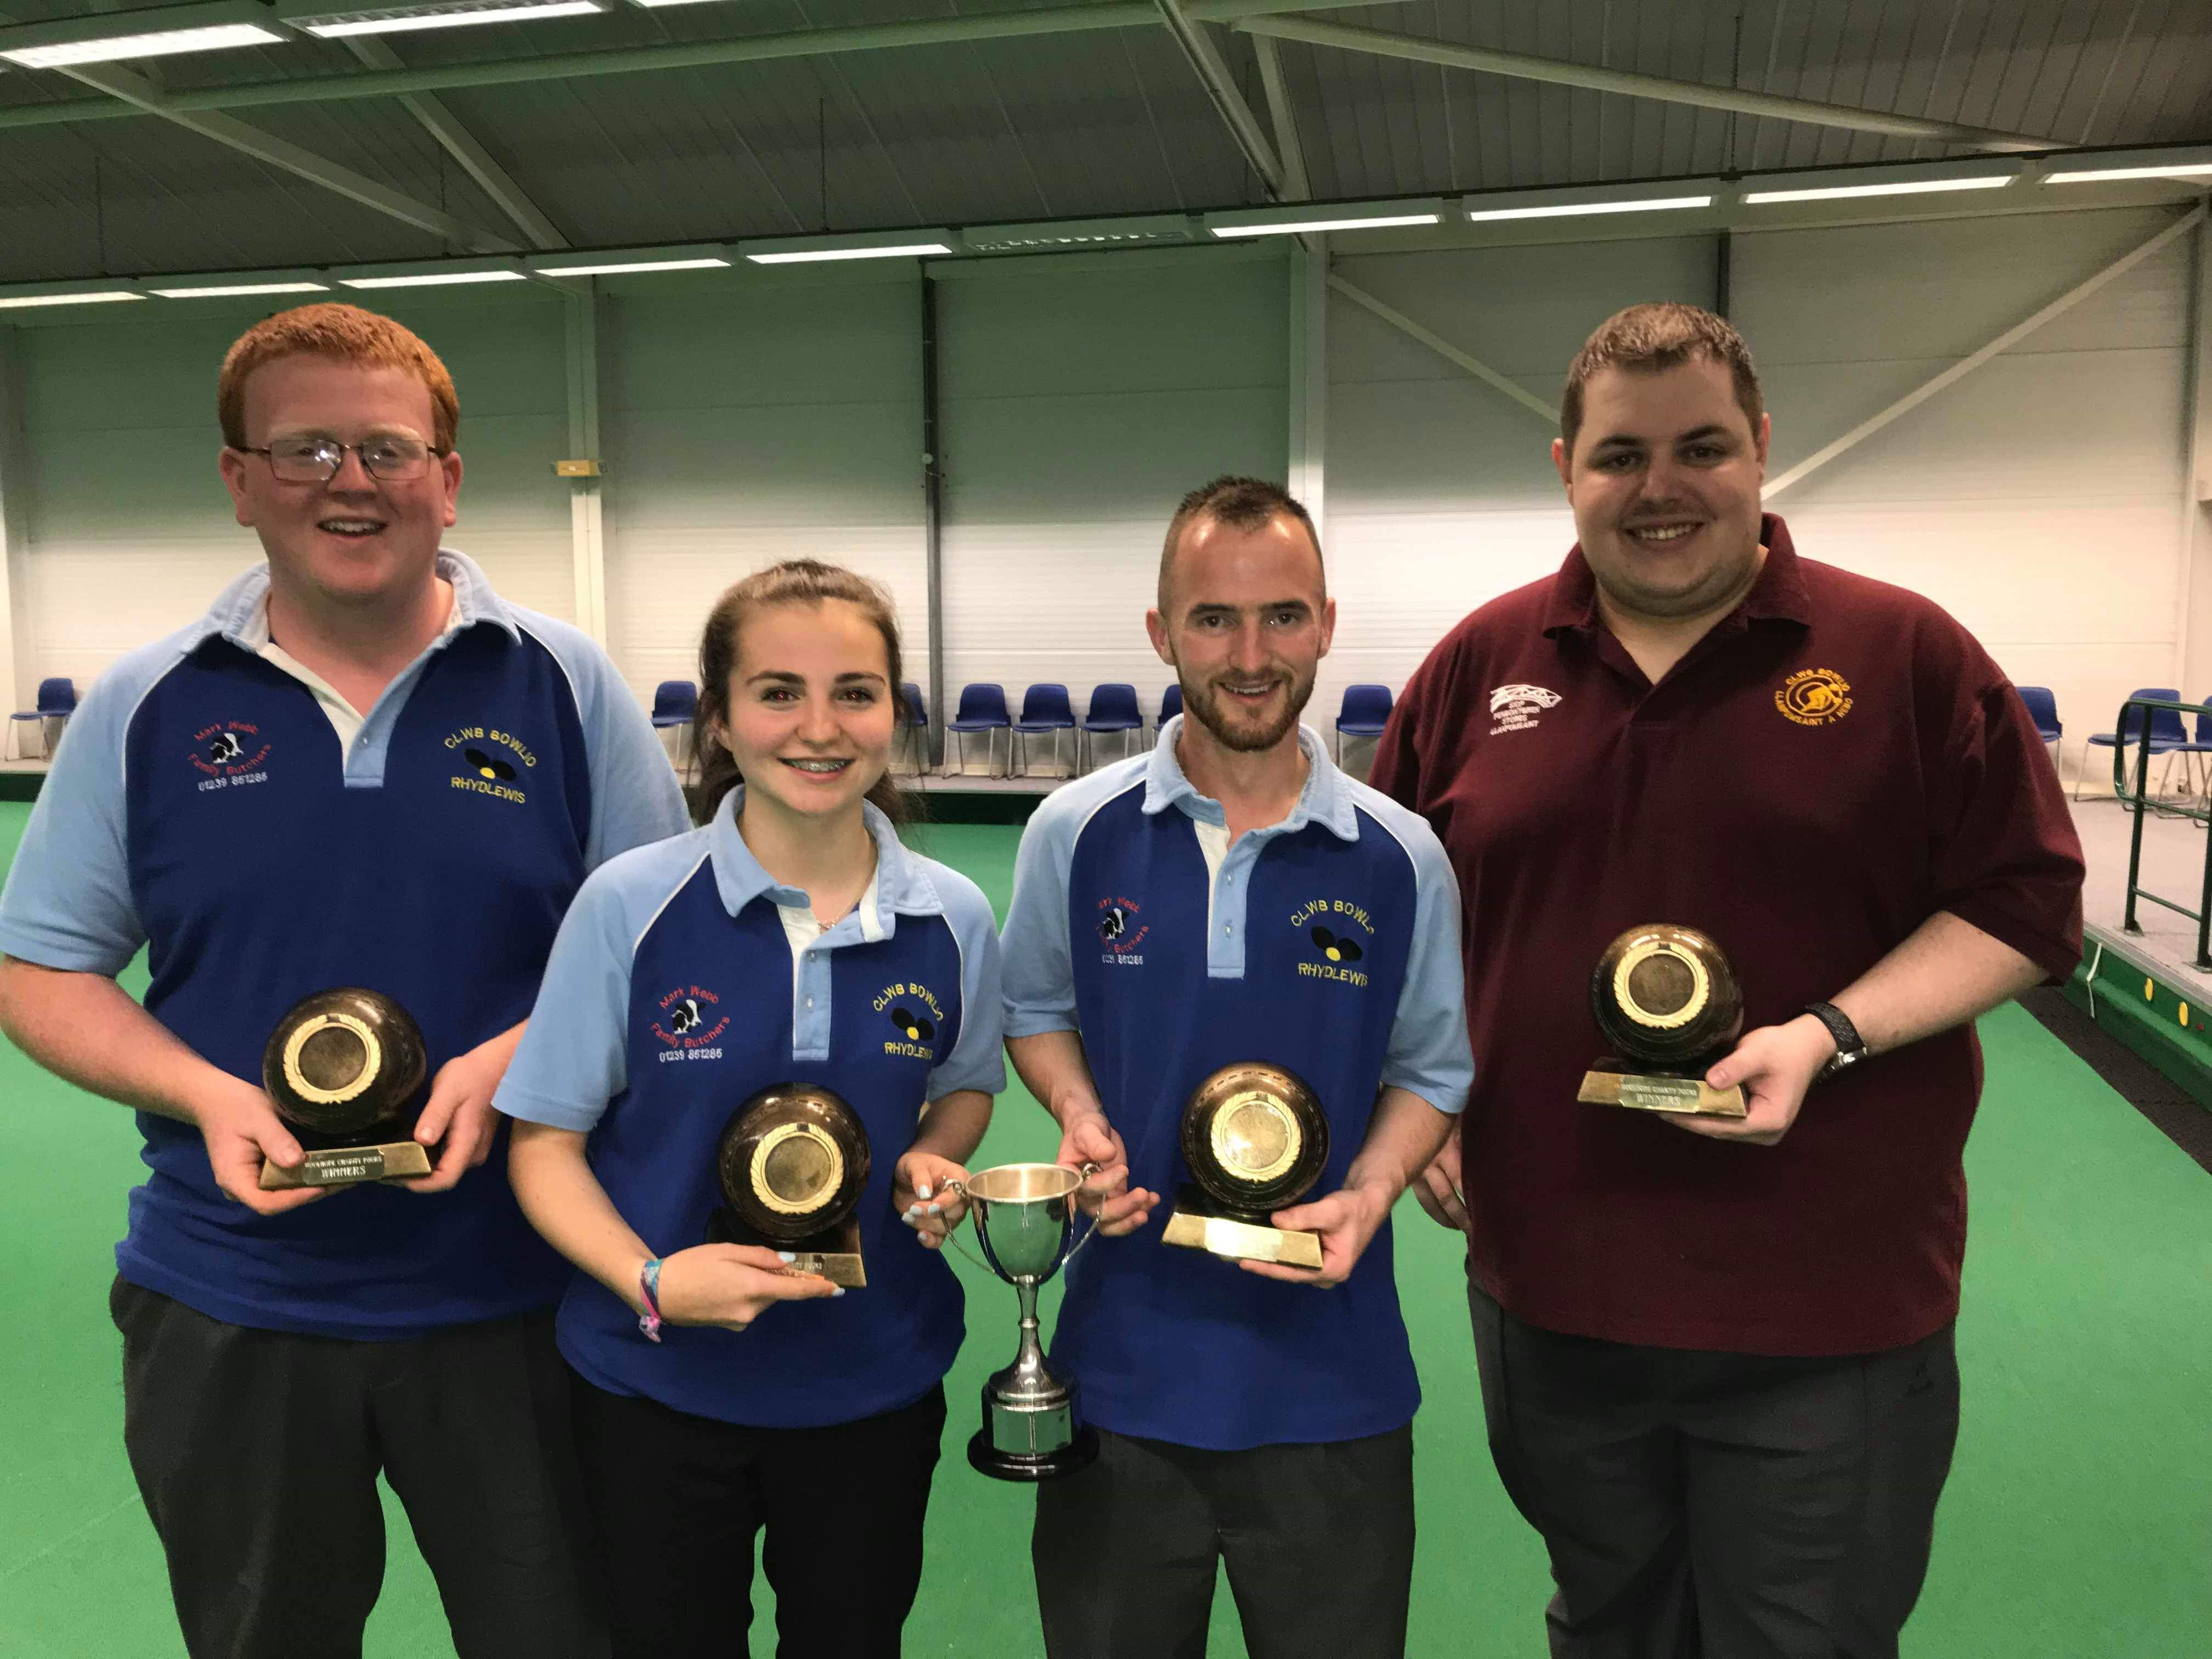 Woolhope Open Fours 07/09/2019